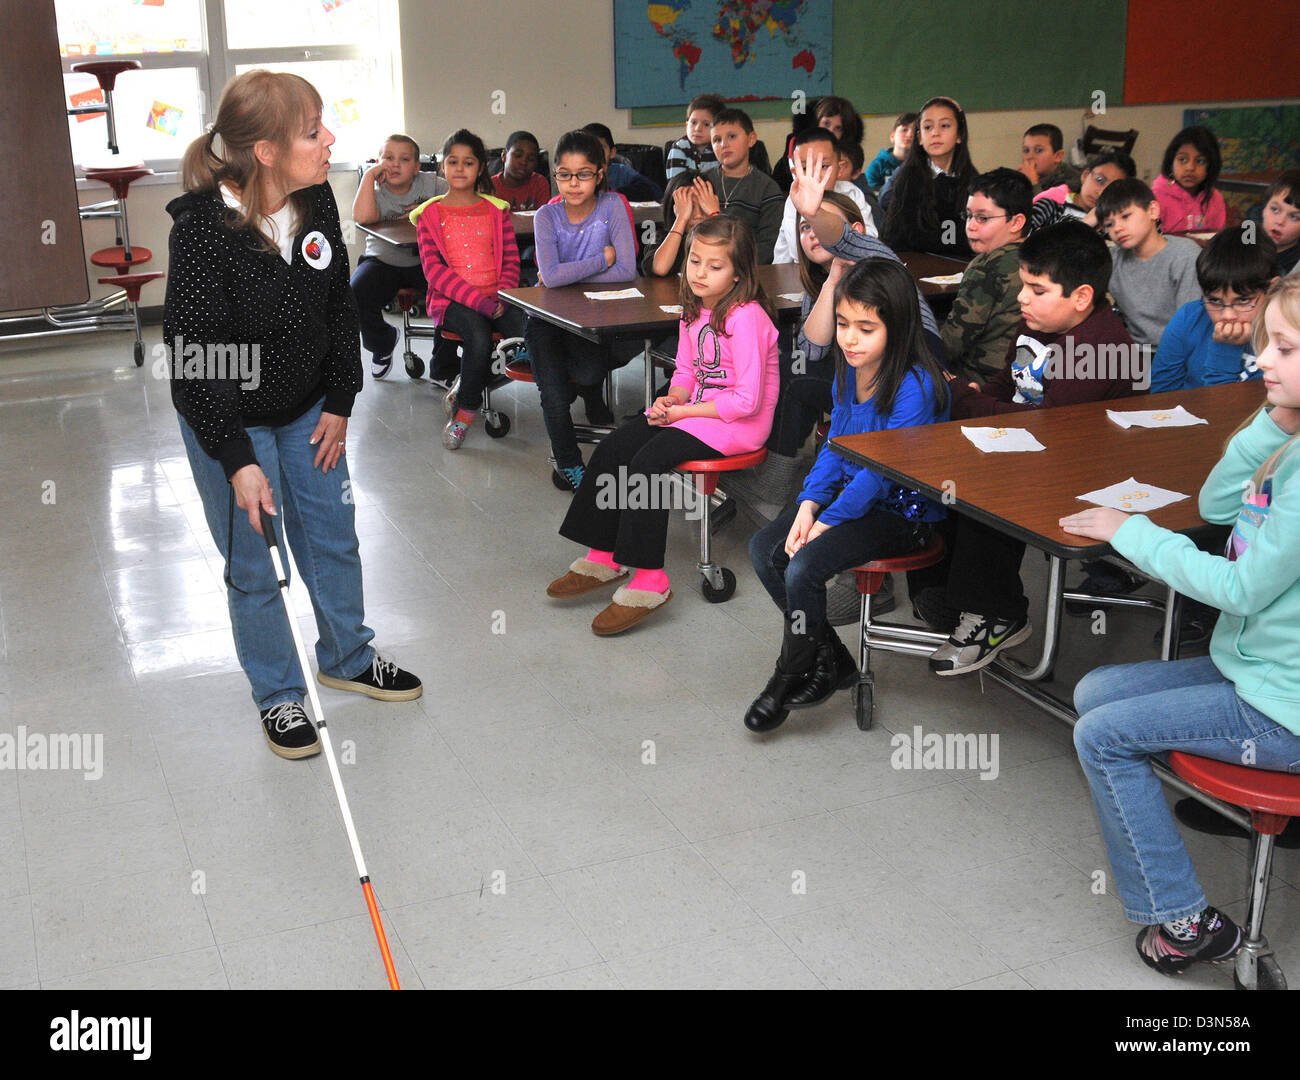 A teacher shows children how visually impaired people use a walking cane to help get around in a CT elementary school. - Stock Image